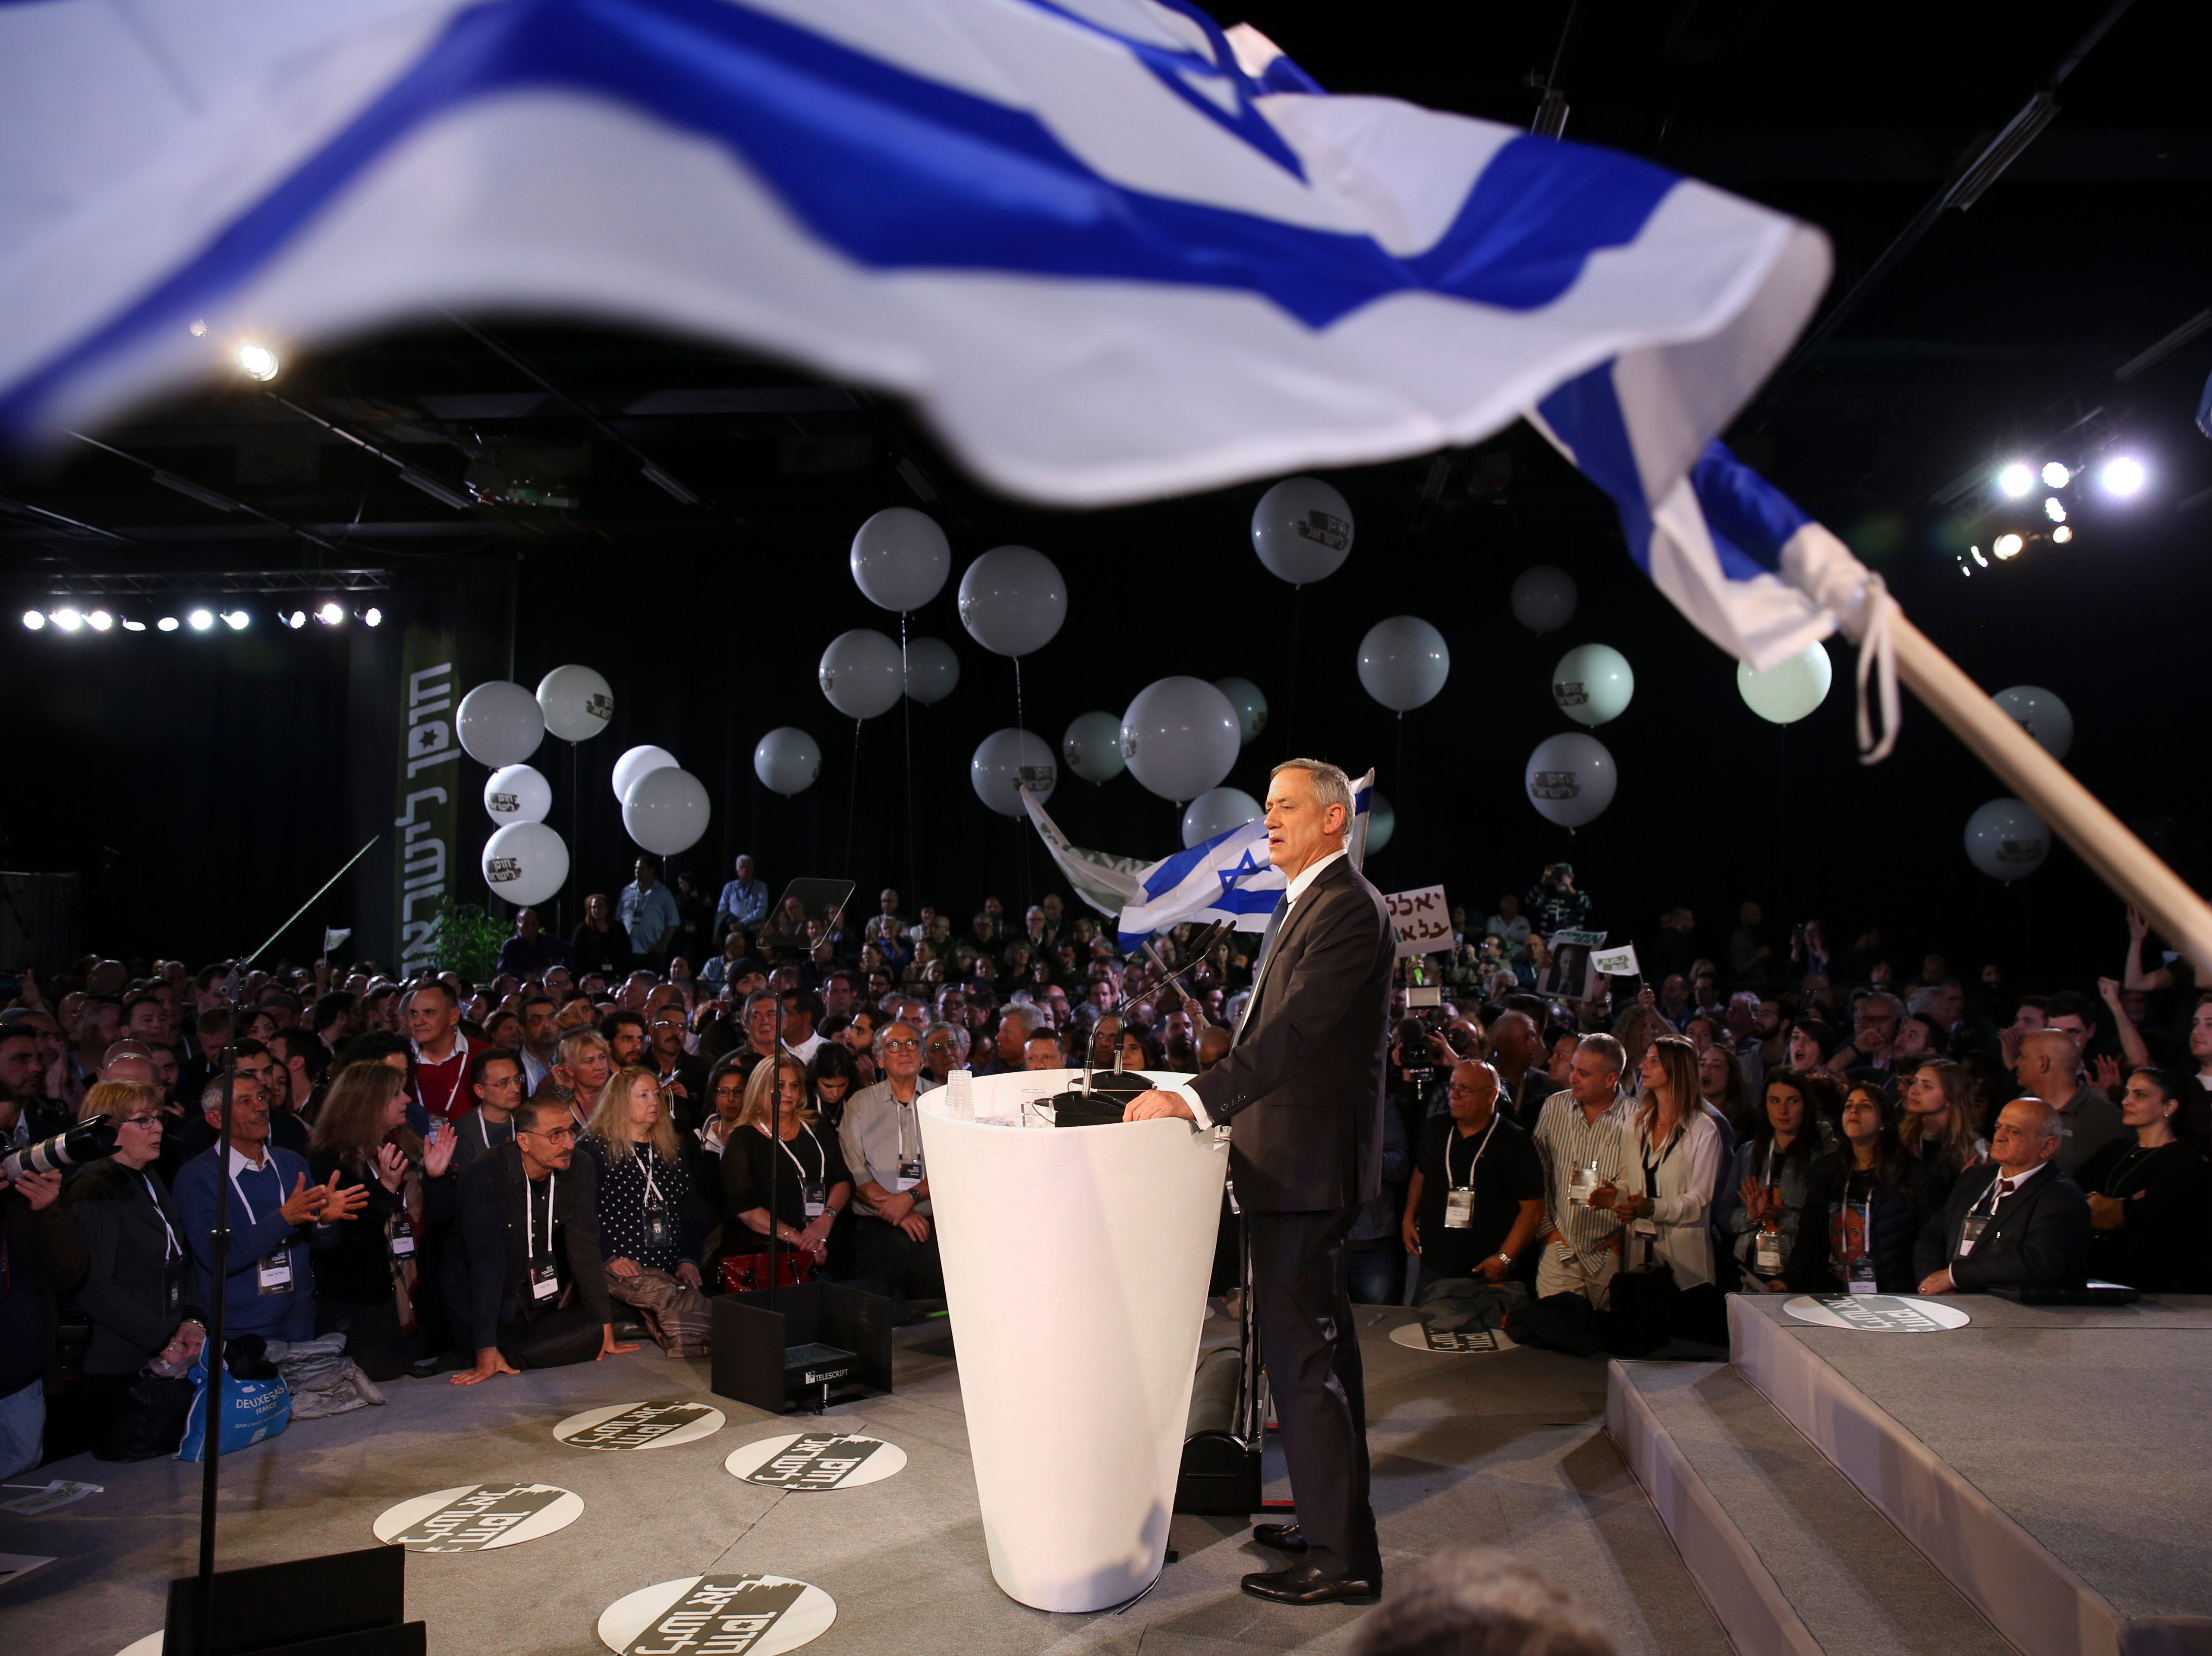 Retired Israeli military chief Benny Gantz speaks at the official launch of his election campaign for the April 2019 elections, in Tel Aviv, Tuesday, Jan. 29, 2019. Gantz positioned himself as the most viable alternative to Prime Minister Benjamin Netanyahu.